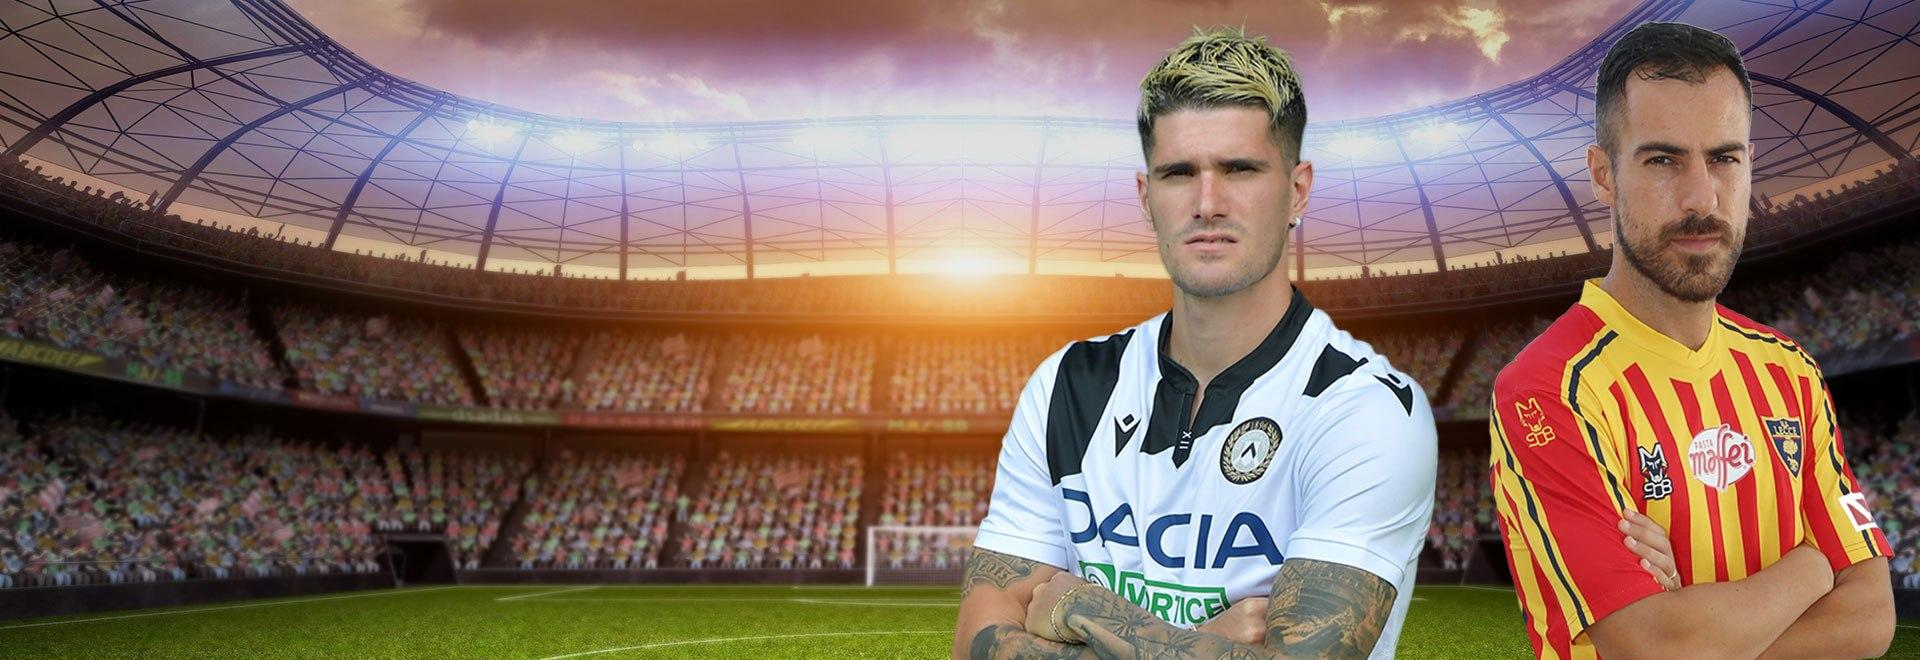 Udinese - Lecce